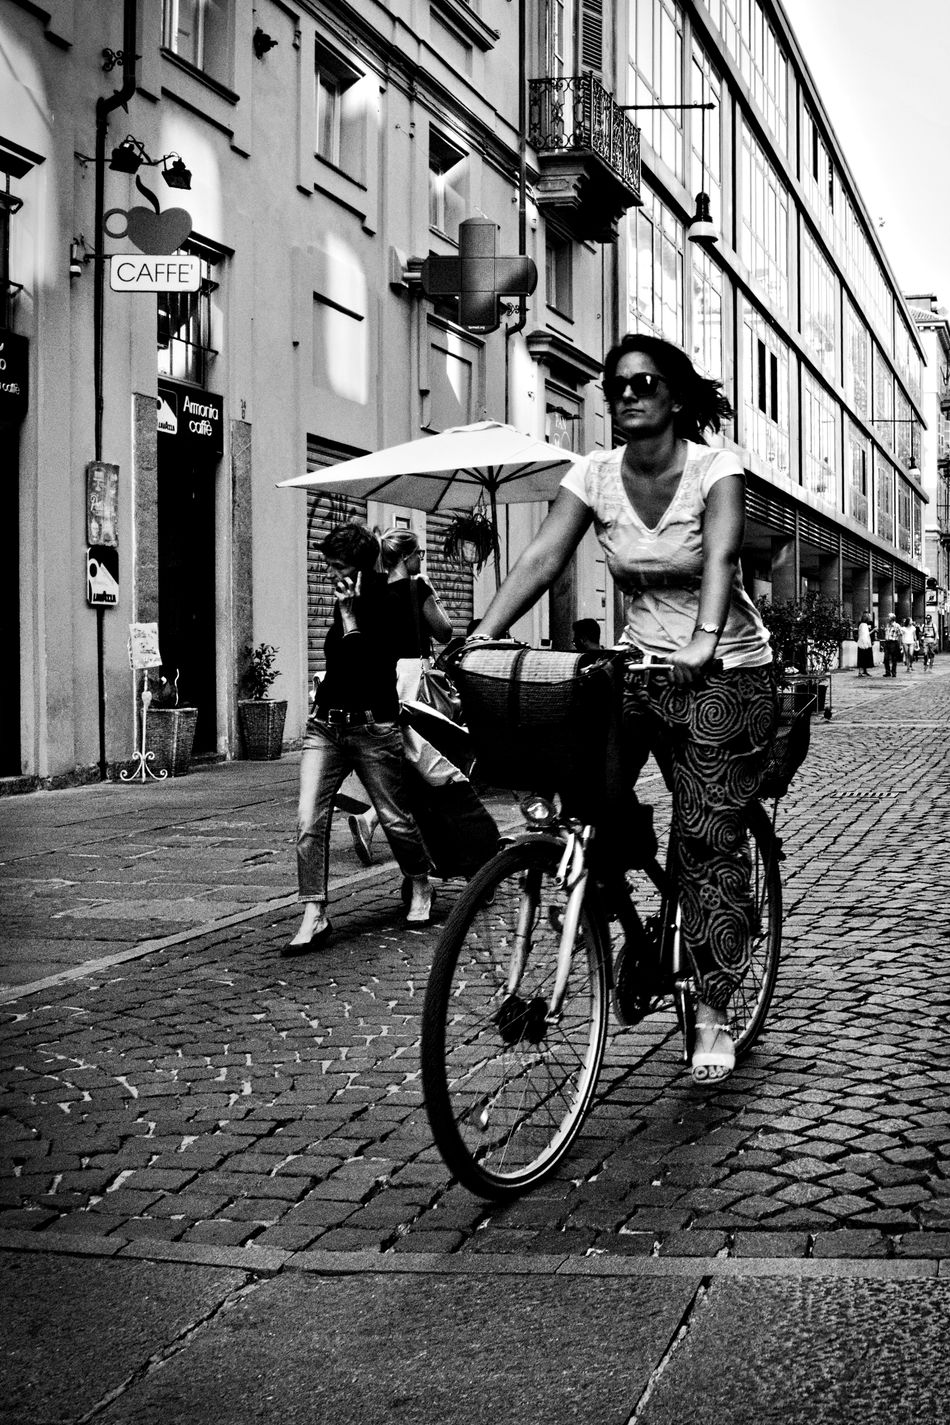 City rider. Adult Bicycle Bicycle Rider Bike Black And White Black And White Photography Bnw City City Life Lifestyles Olympus Om-d E-m10 Outdoors People Person Street Street Life Street Photography Torino Italy Transportation Transportation Vehicle Turin Turin Italy Walking People Young Women Monochrome Photography